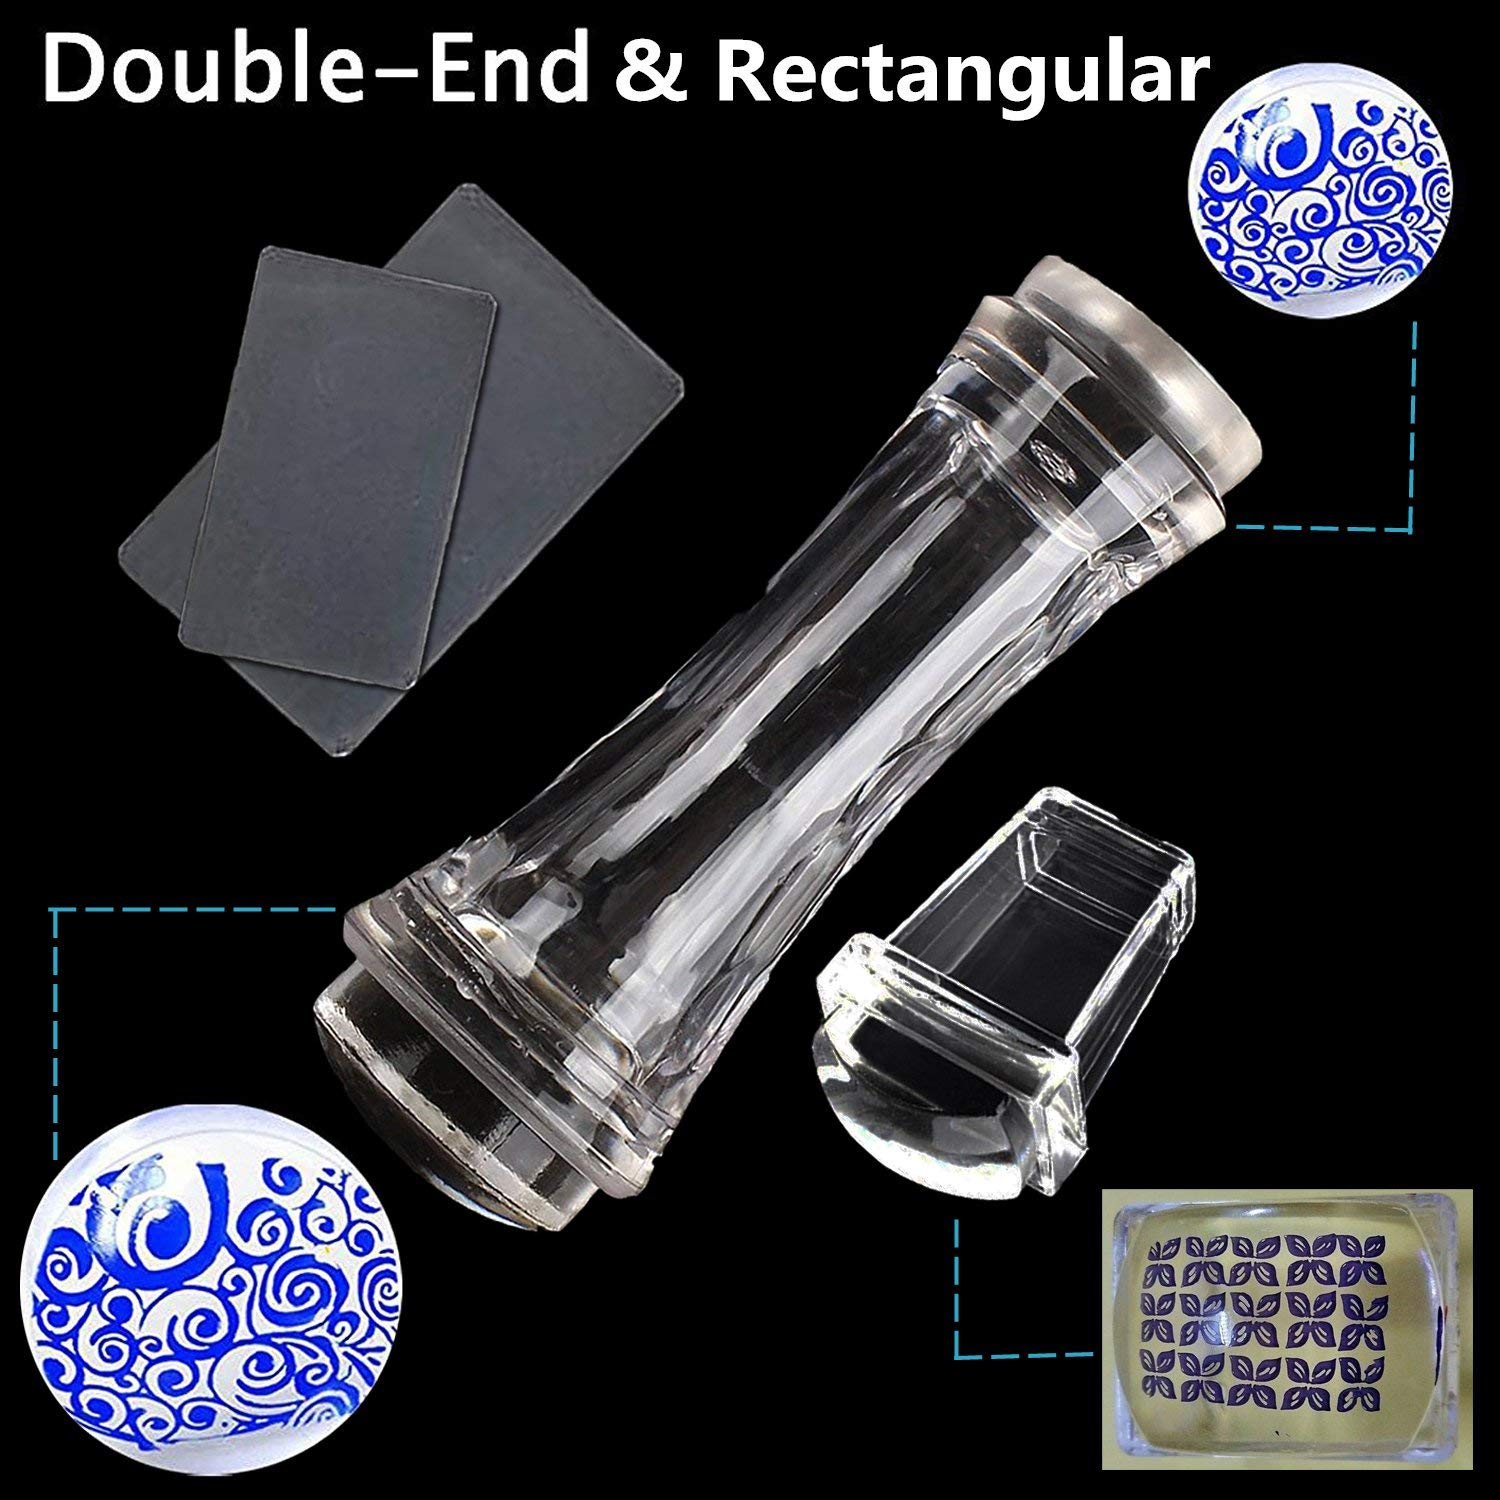 2 Pcs Double Ended Transparent Round and Jelly Clear Stampers Plate And Scrapers Set DIY Nail Art Tools Template Manicure Accessories(Large:1.18in;Mini:1.1in;Rectangle:1.18 multiply 0.91in)